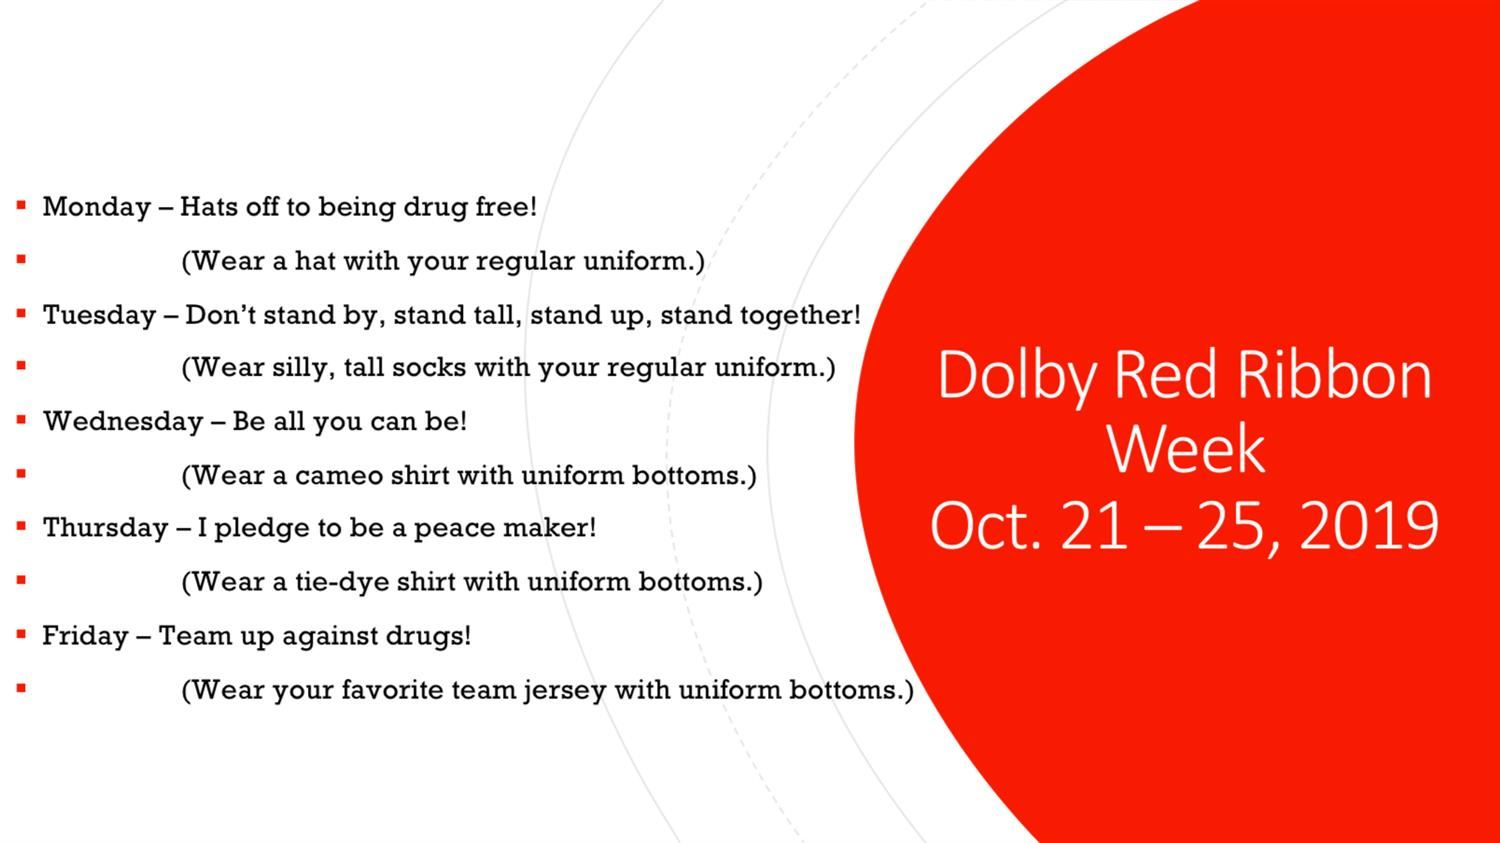 Dolby Red Ribbon Week